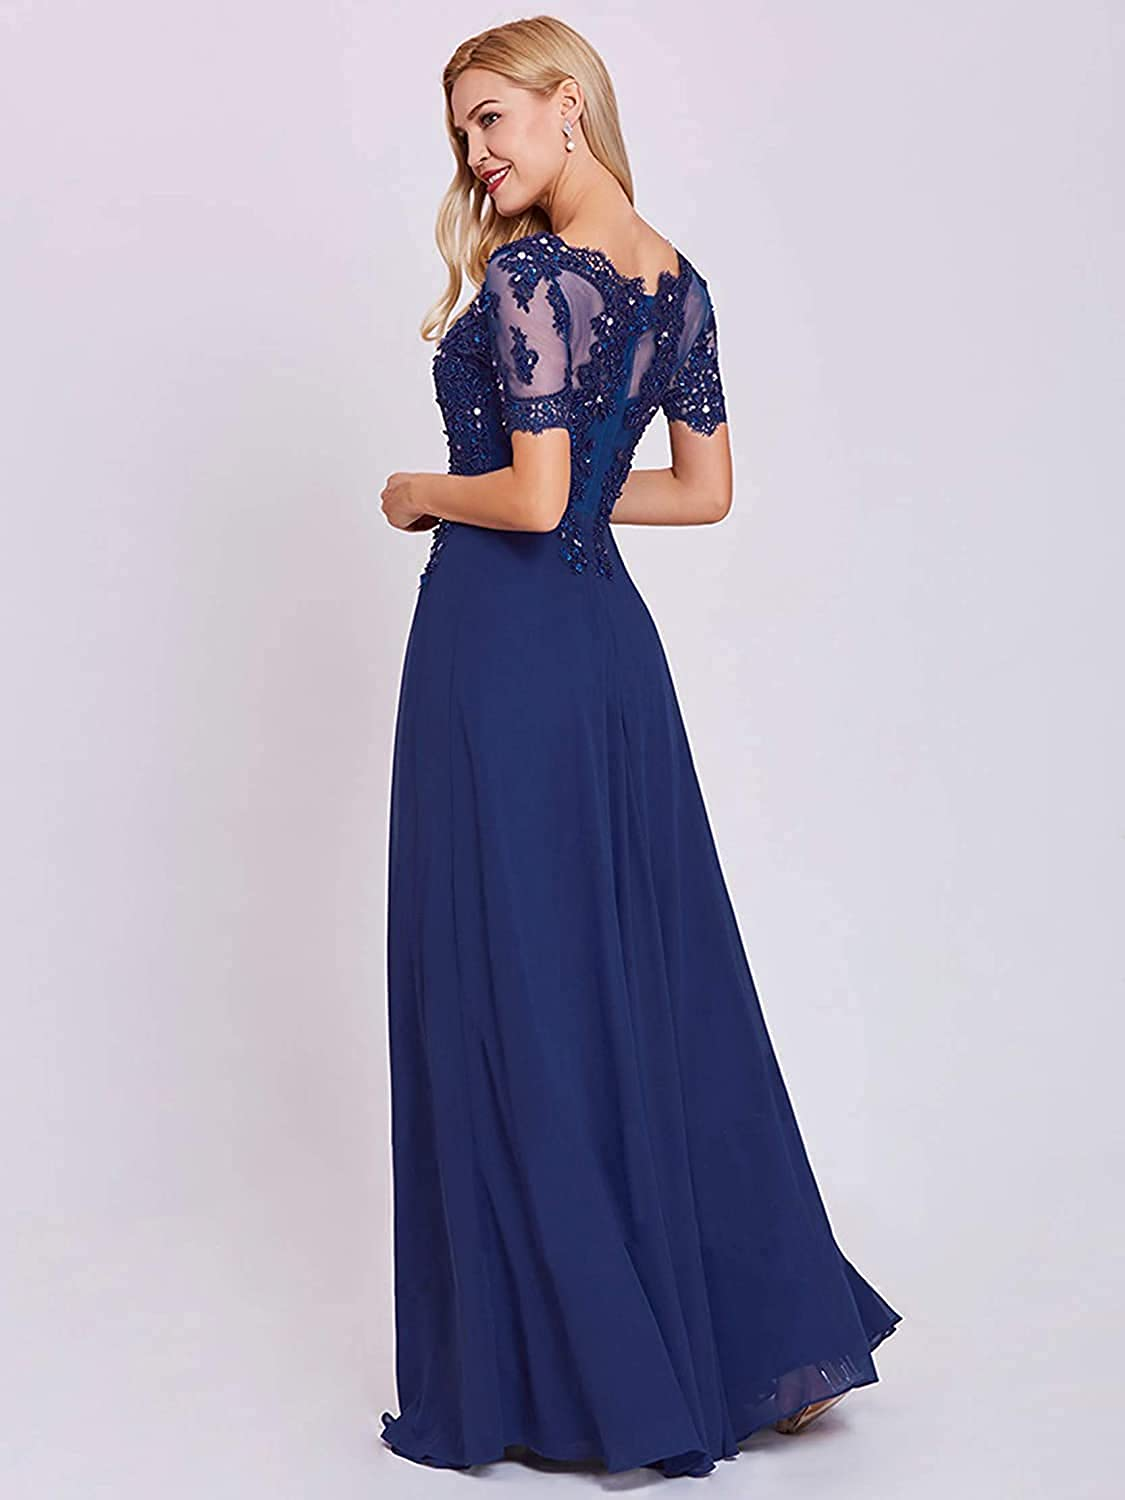 Women's A-line Chiffon Lace Applique Mother of The Bride Dress Beaded Long Formal Evening Gown with Sleeves